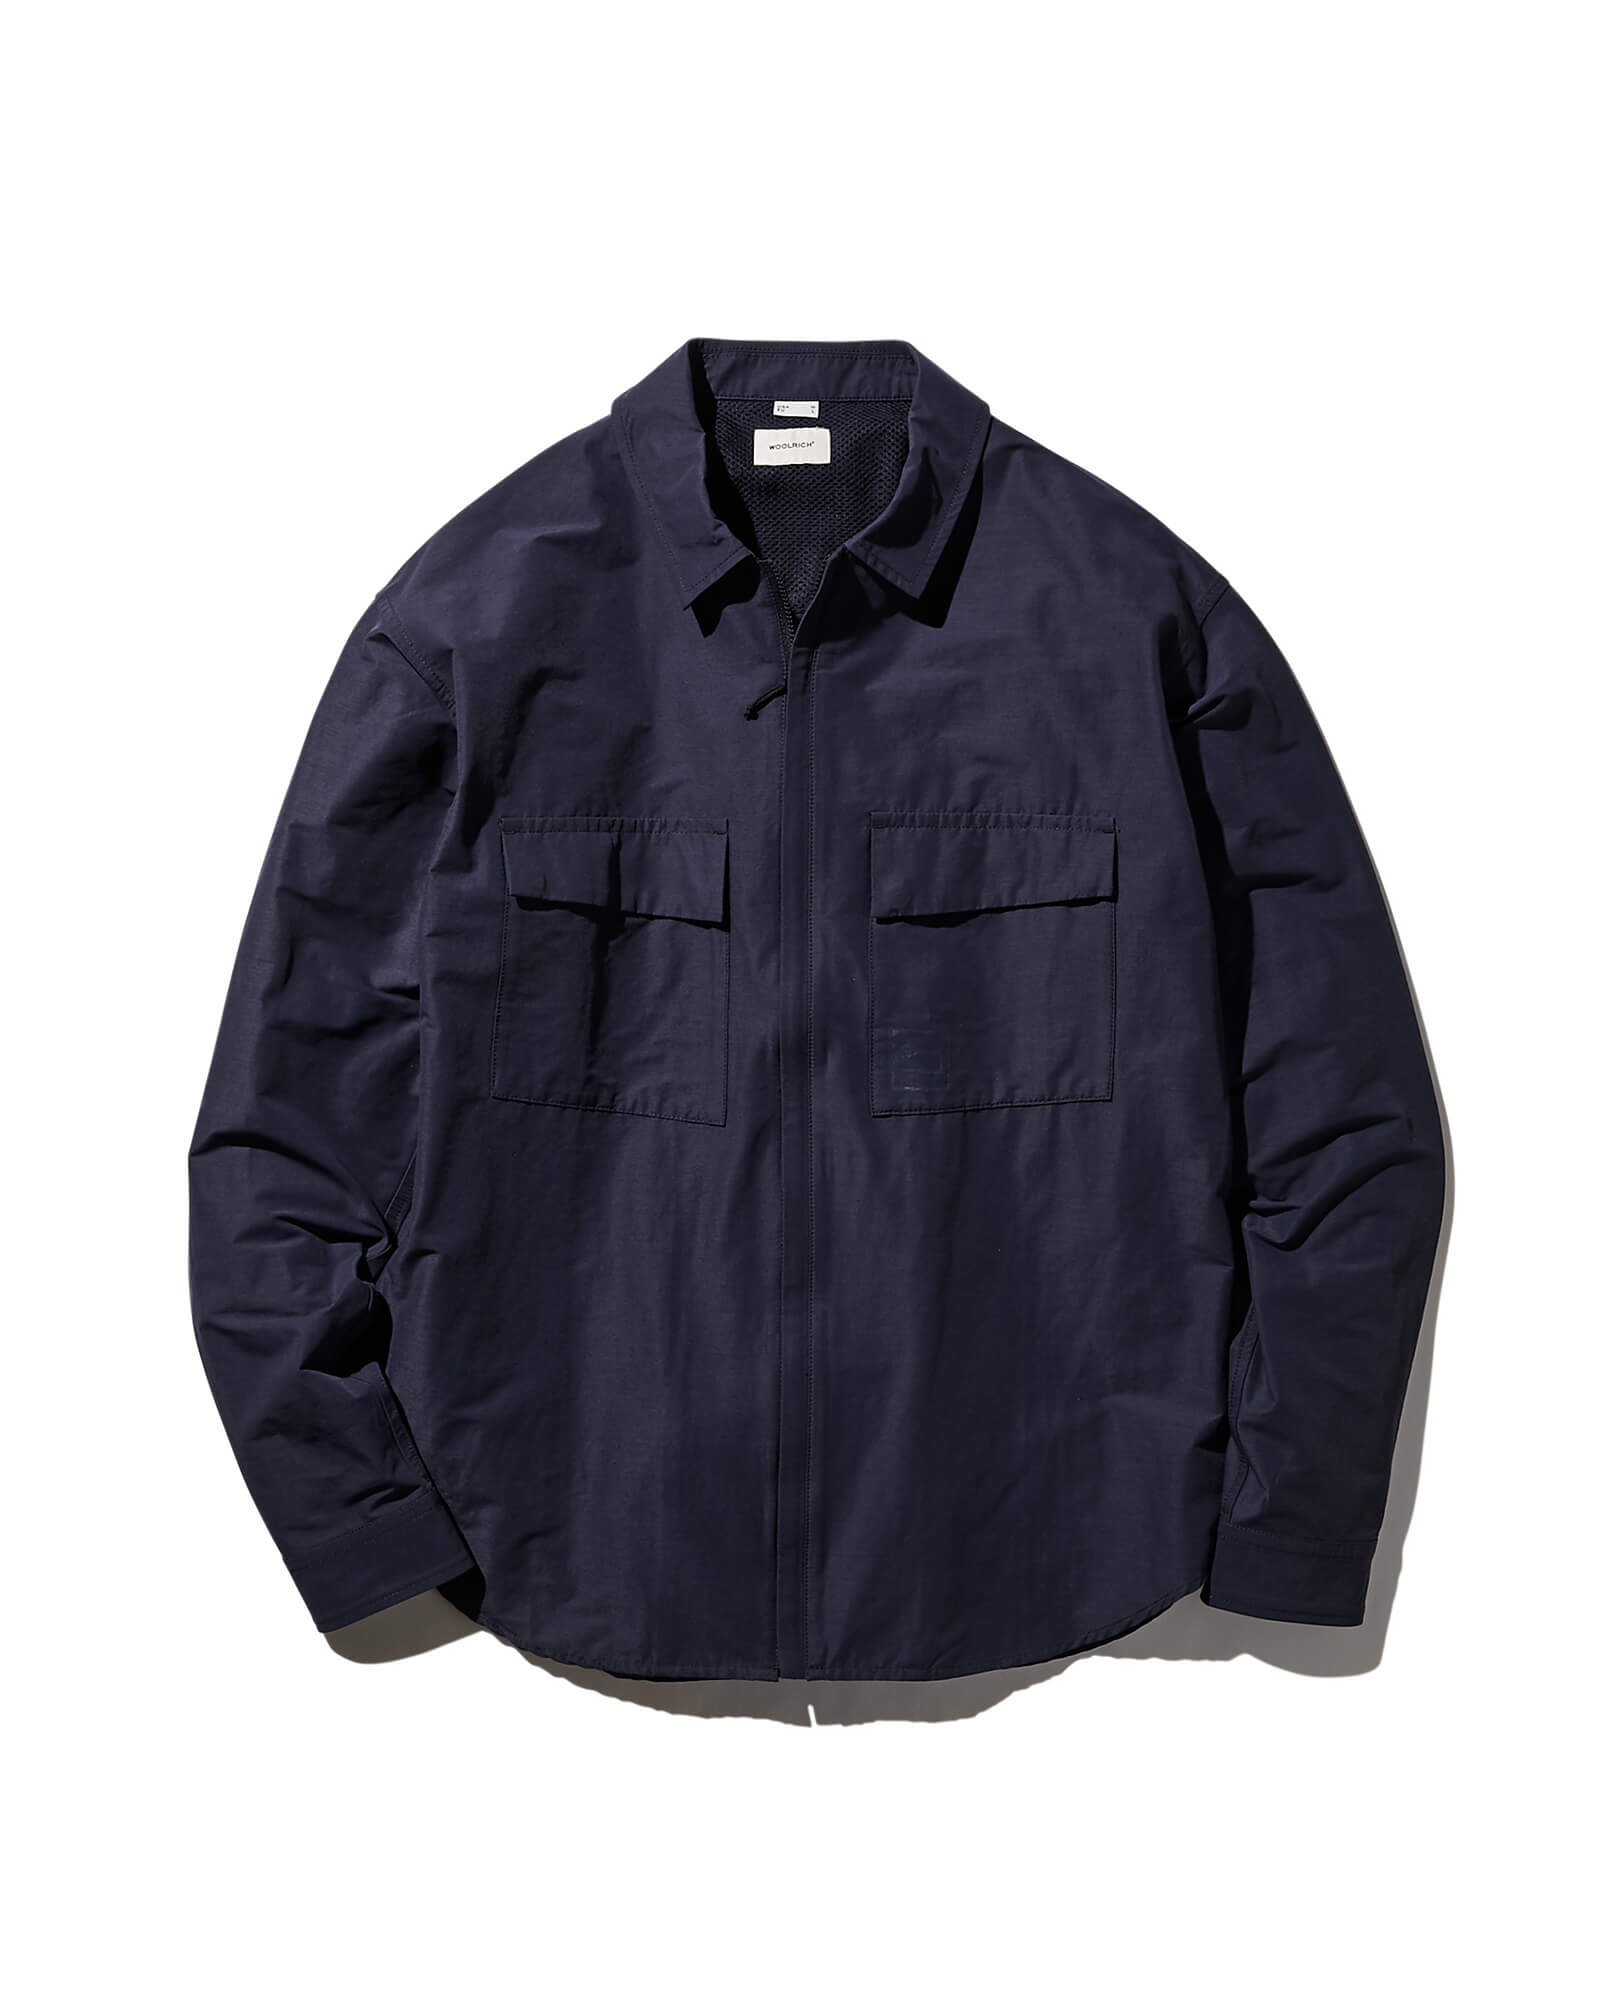 CORDURA×WOOL ZIP-UP SHIRT